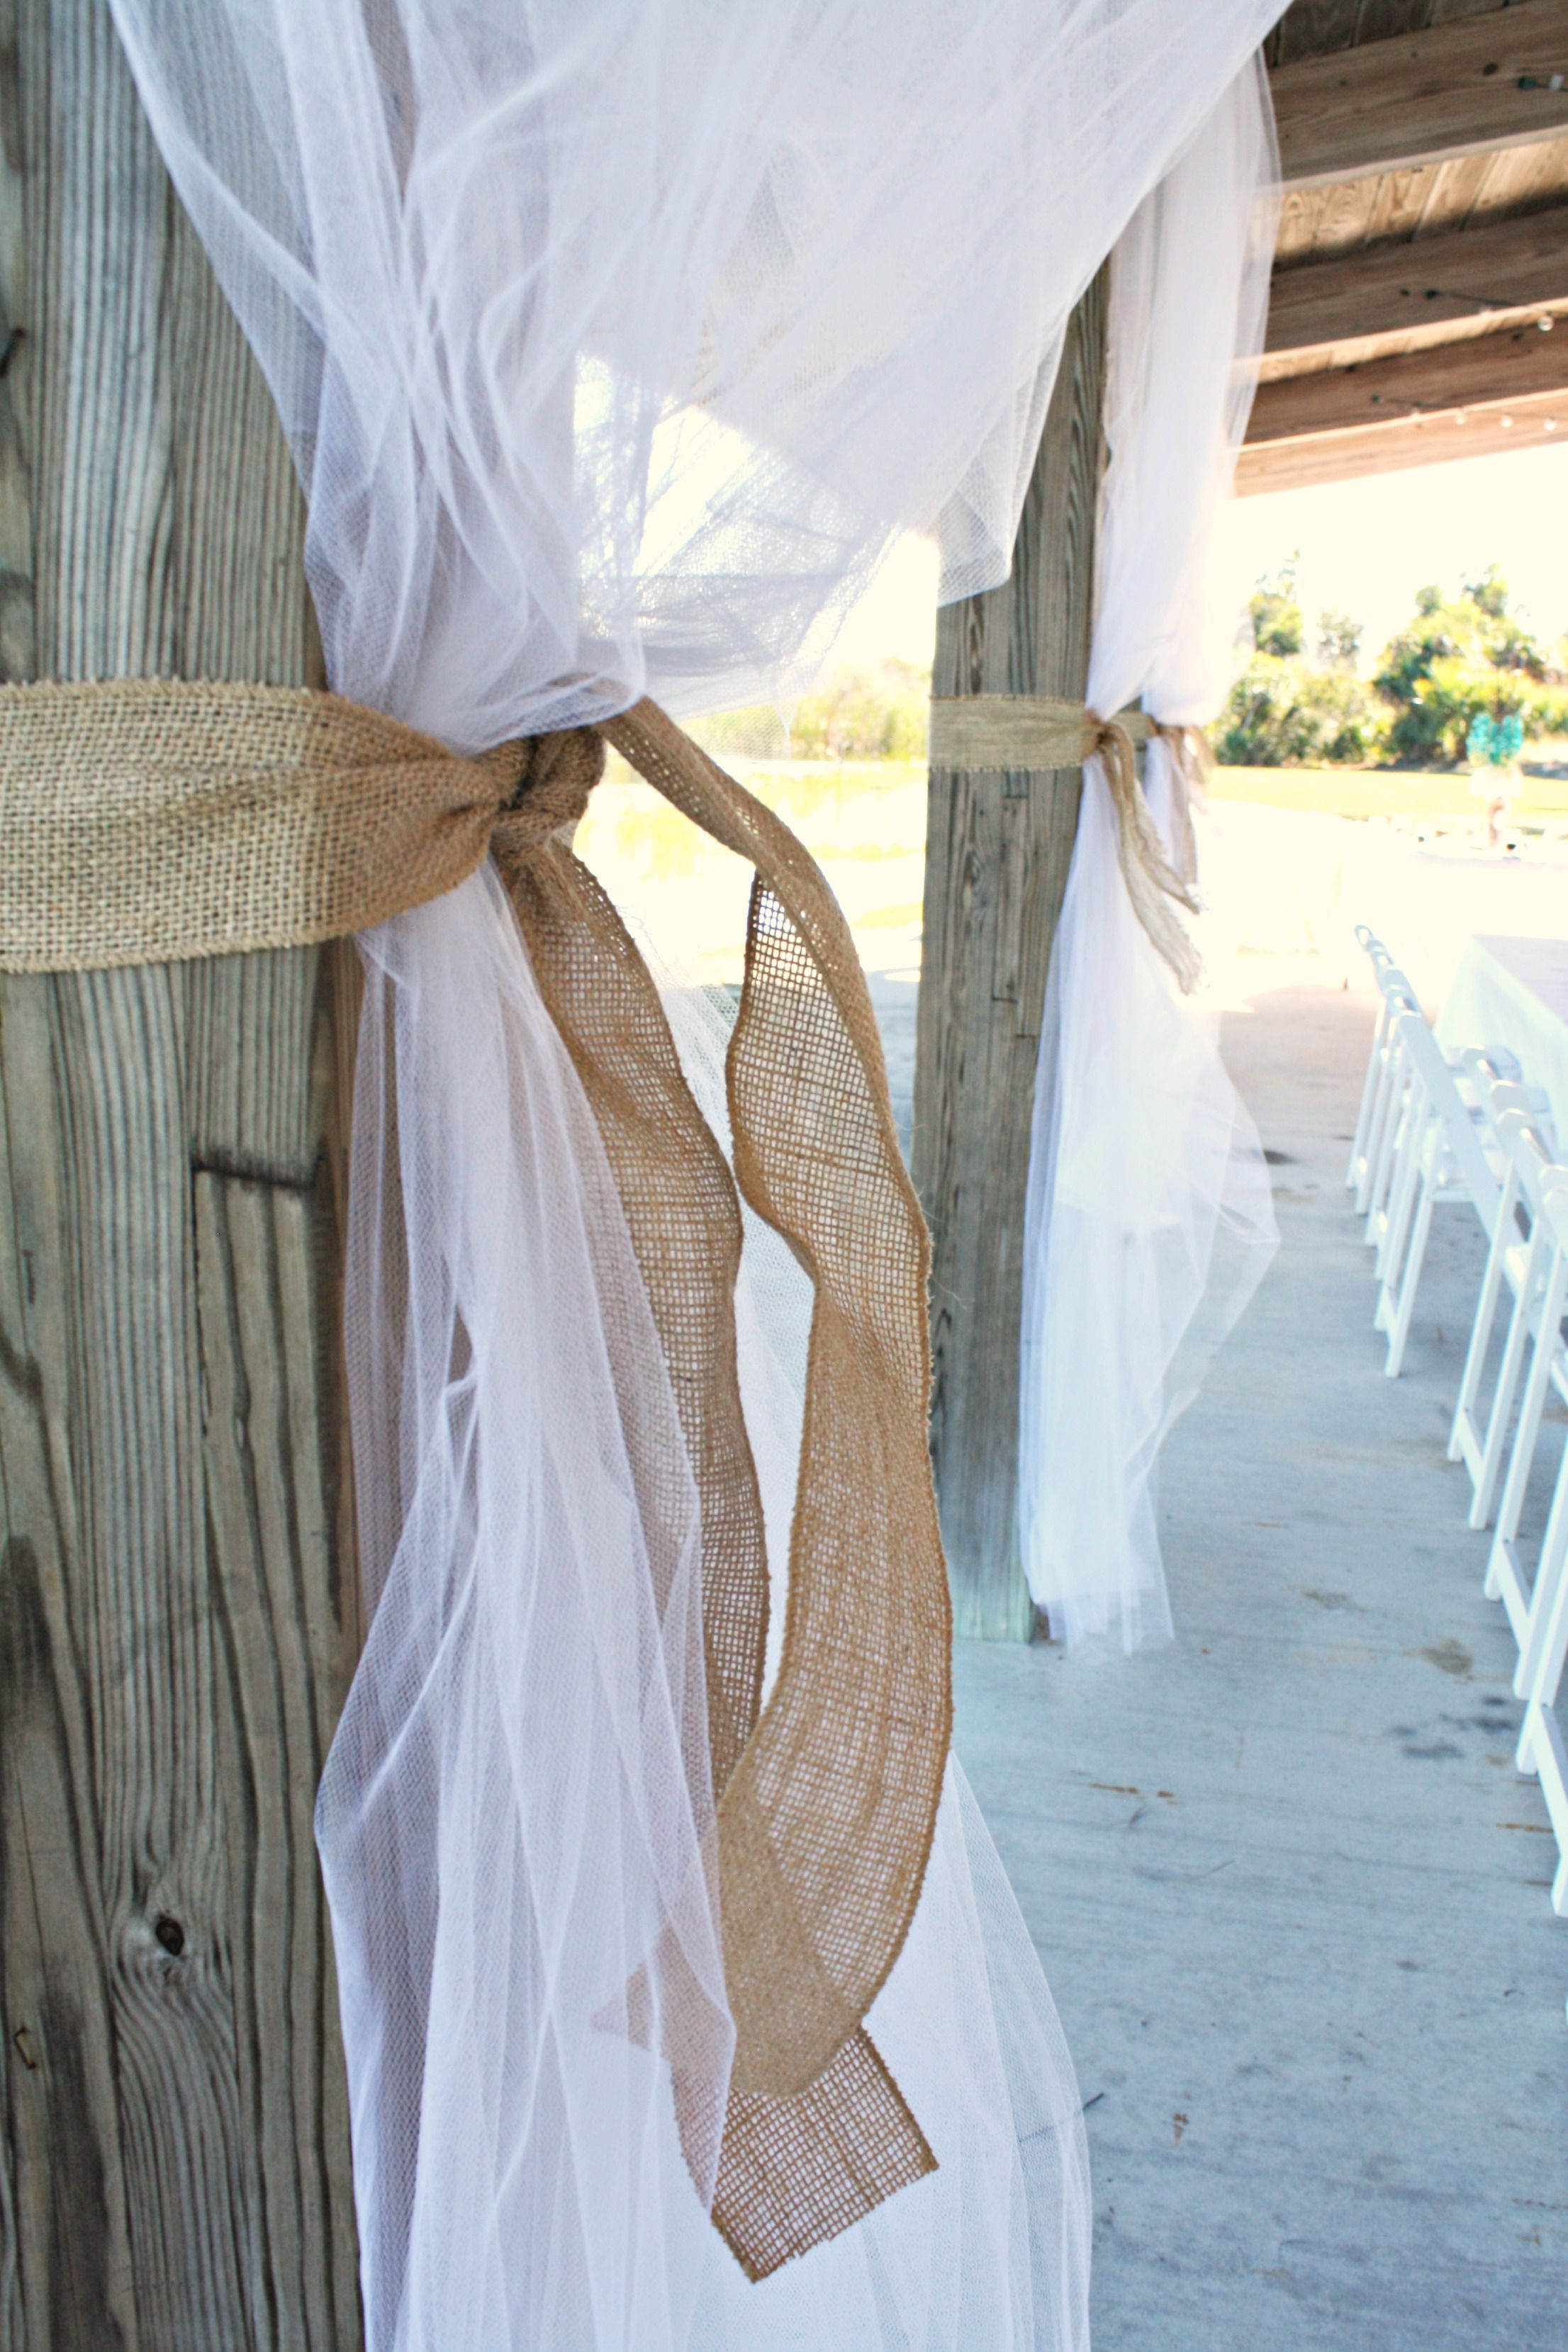 White tulle with wide burlap ribbon adorned the wood posts. This simple decor turned ordinary into extraordinary!